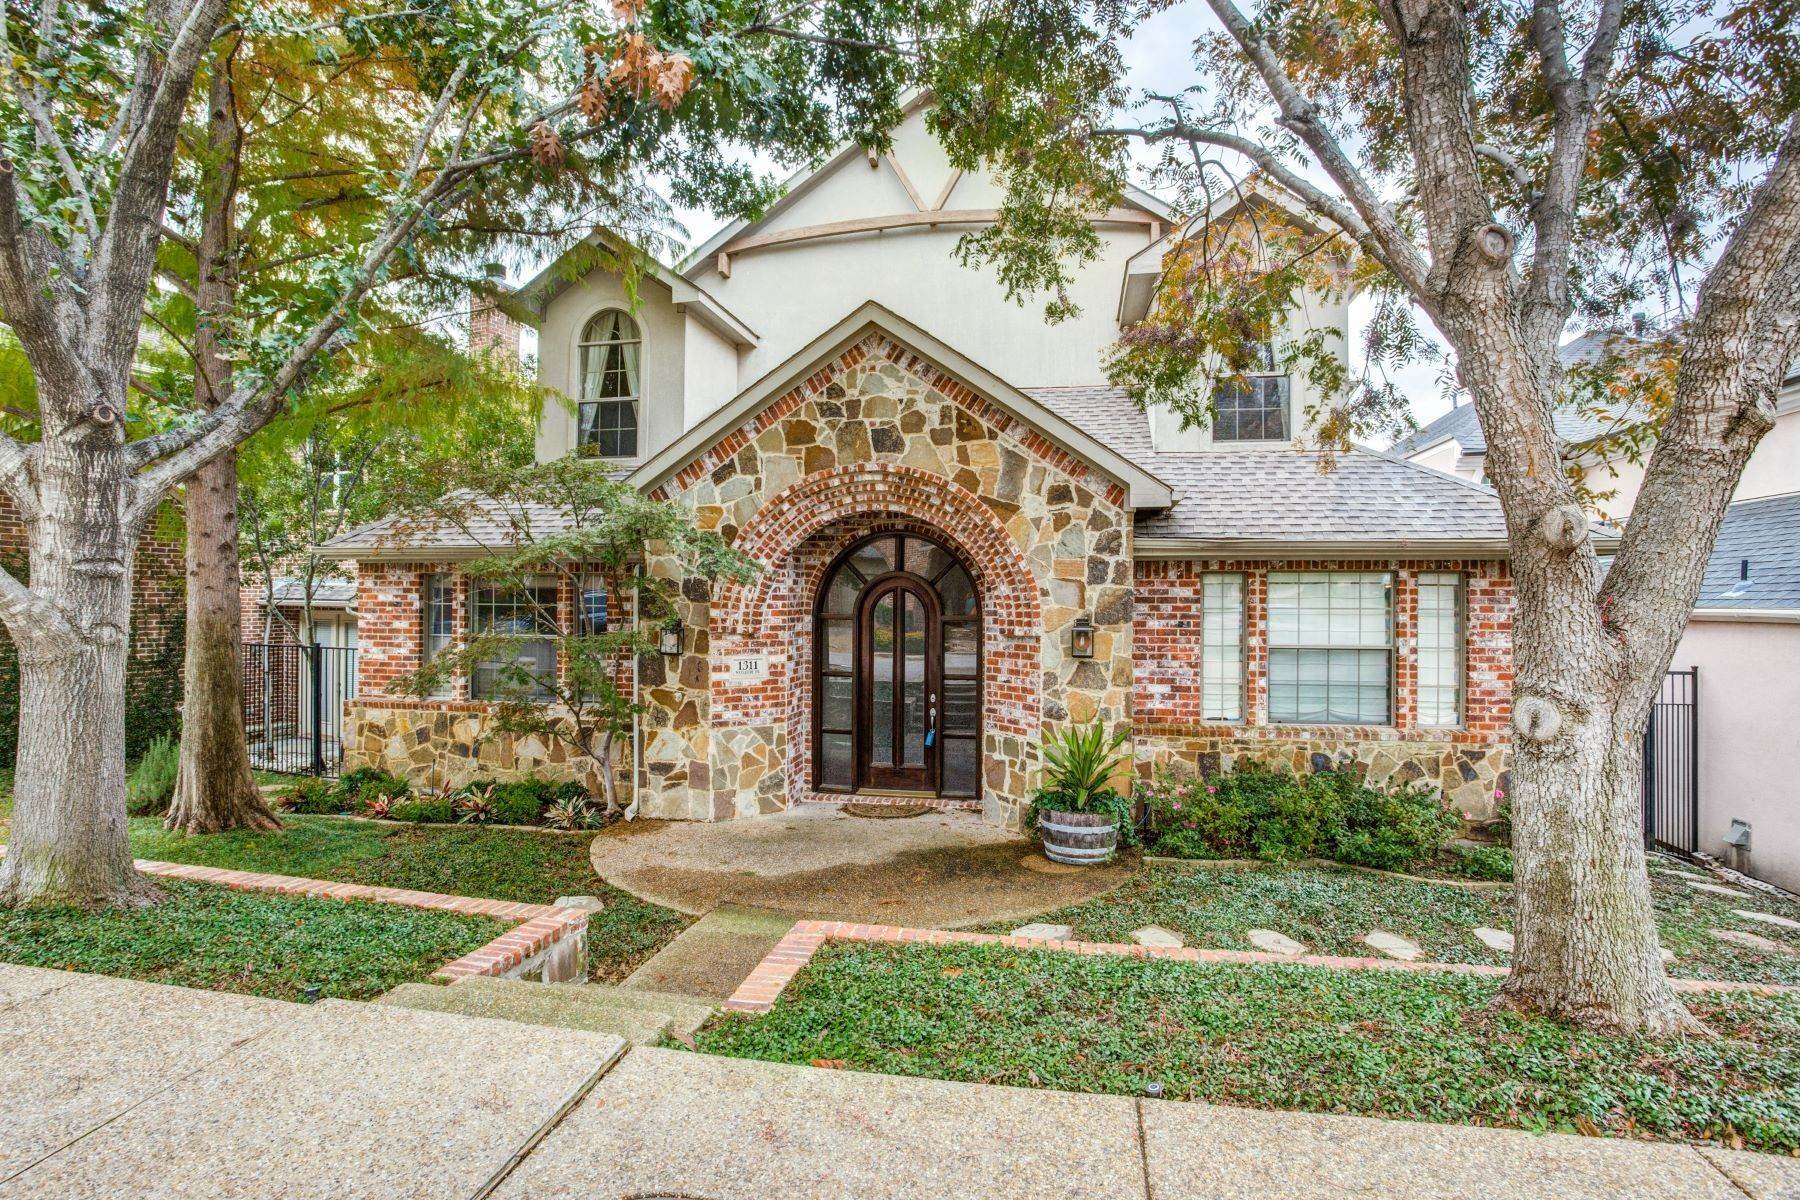 Single Family Homes for Sale at 1311 Waterside Drive, Dallas, TX 75218 1311 Waterside Drive Dallas, Texas 75218 United States